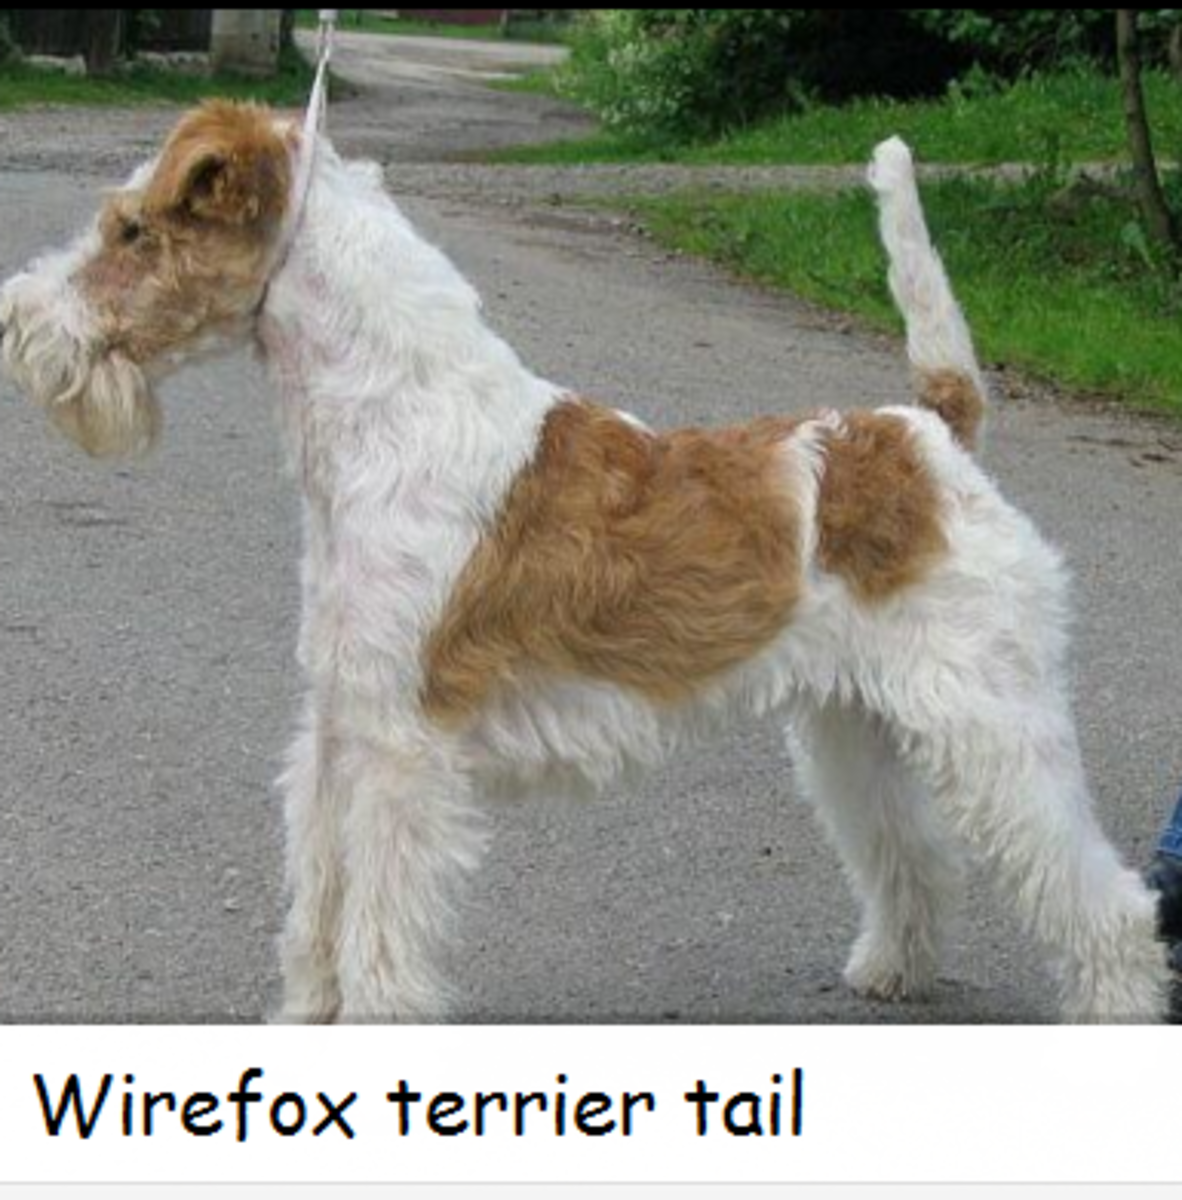 wirefox terrier tail